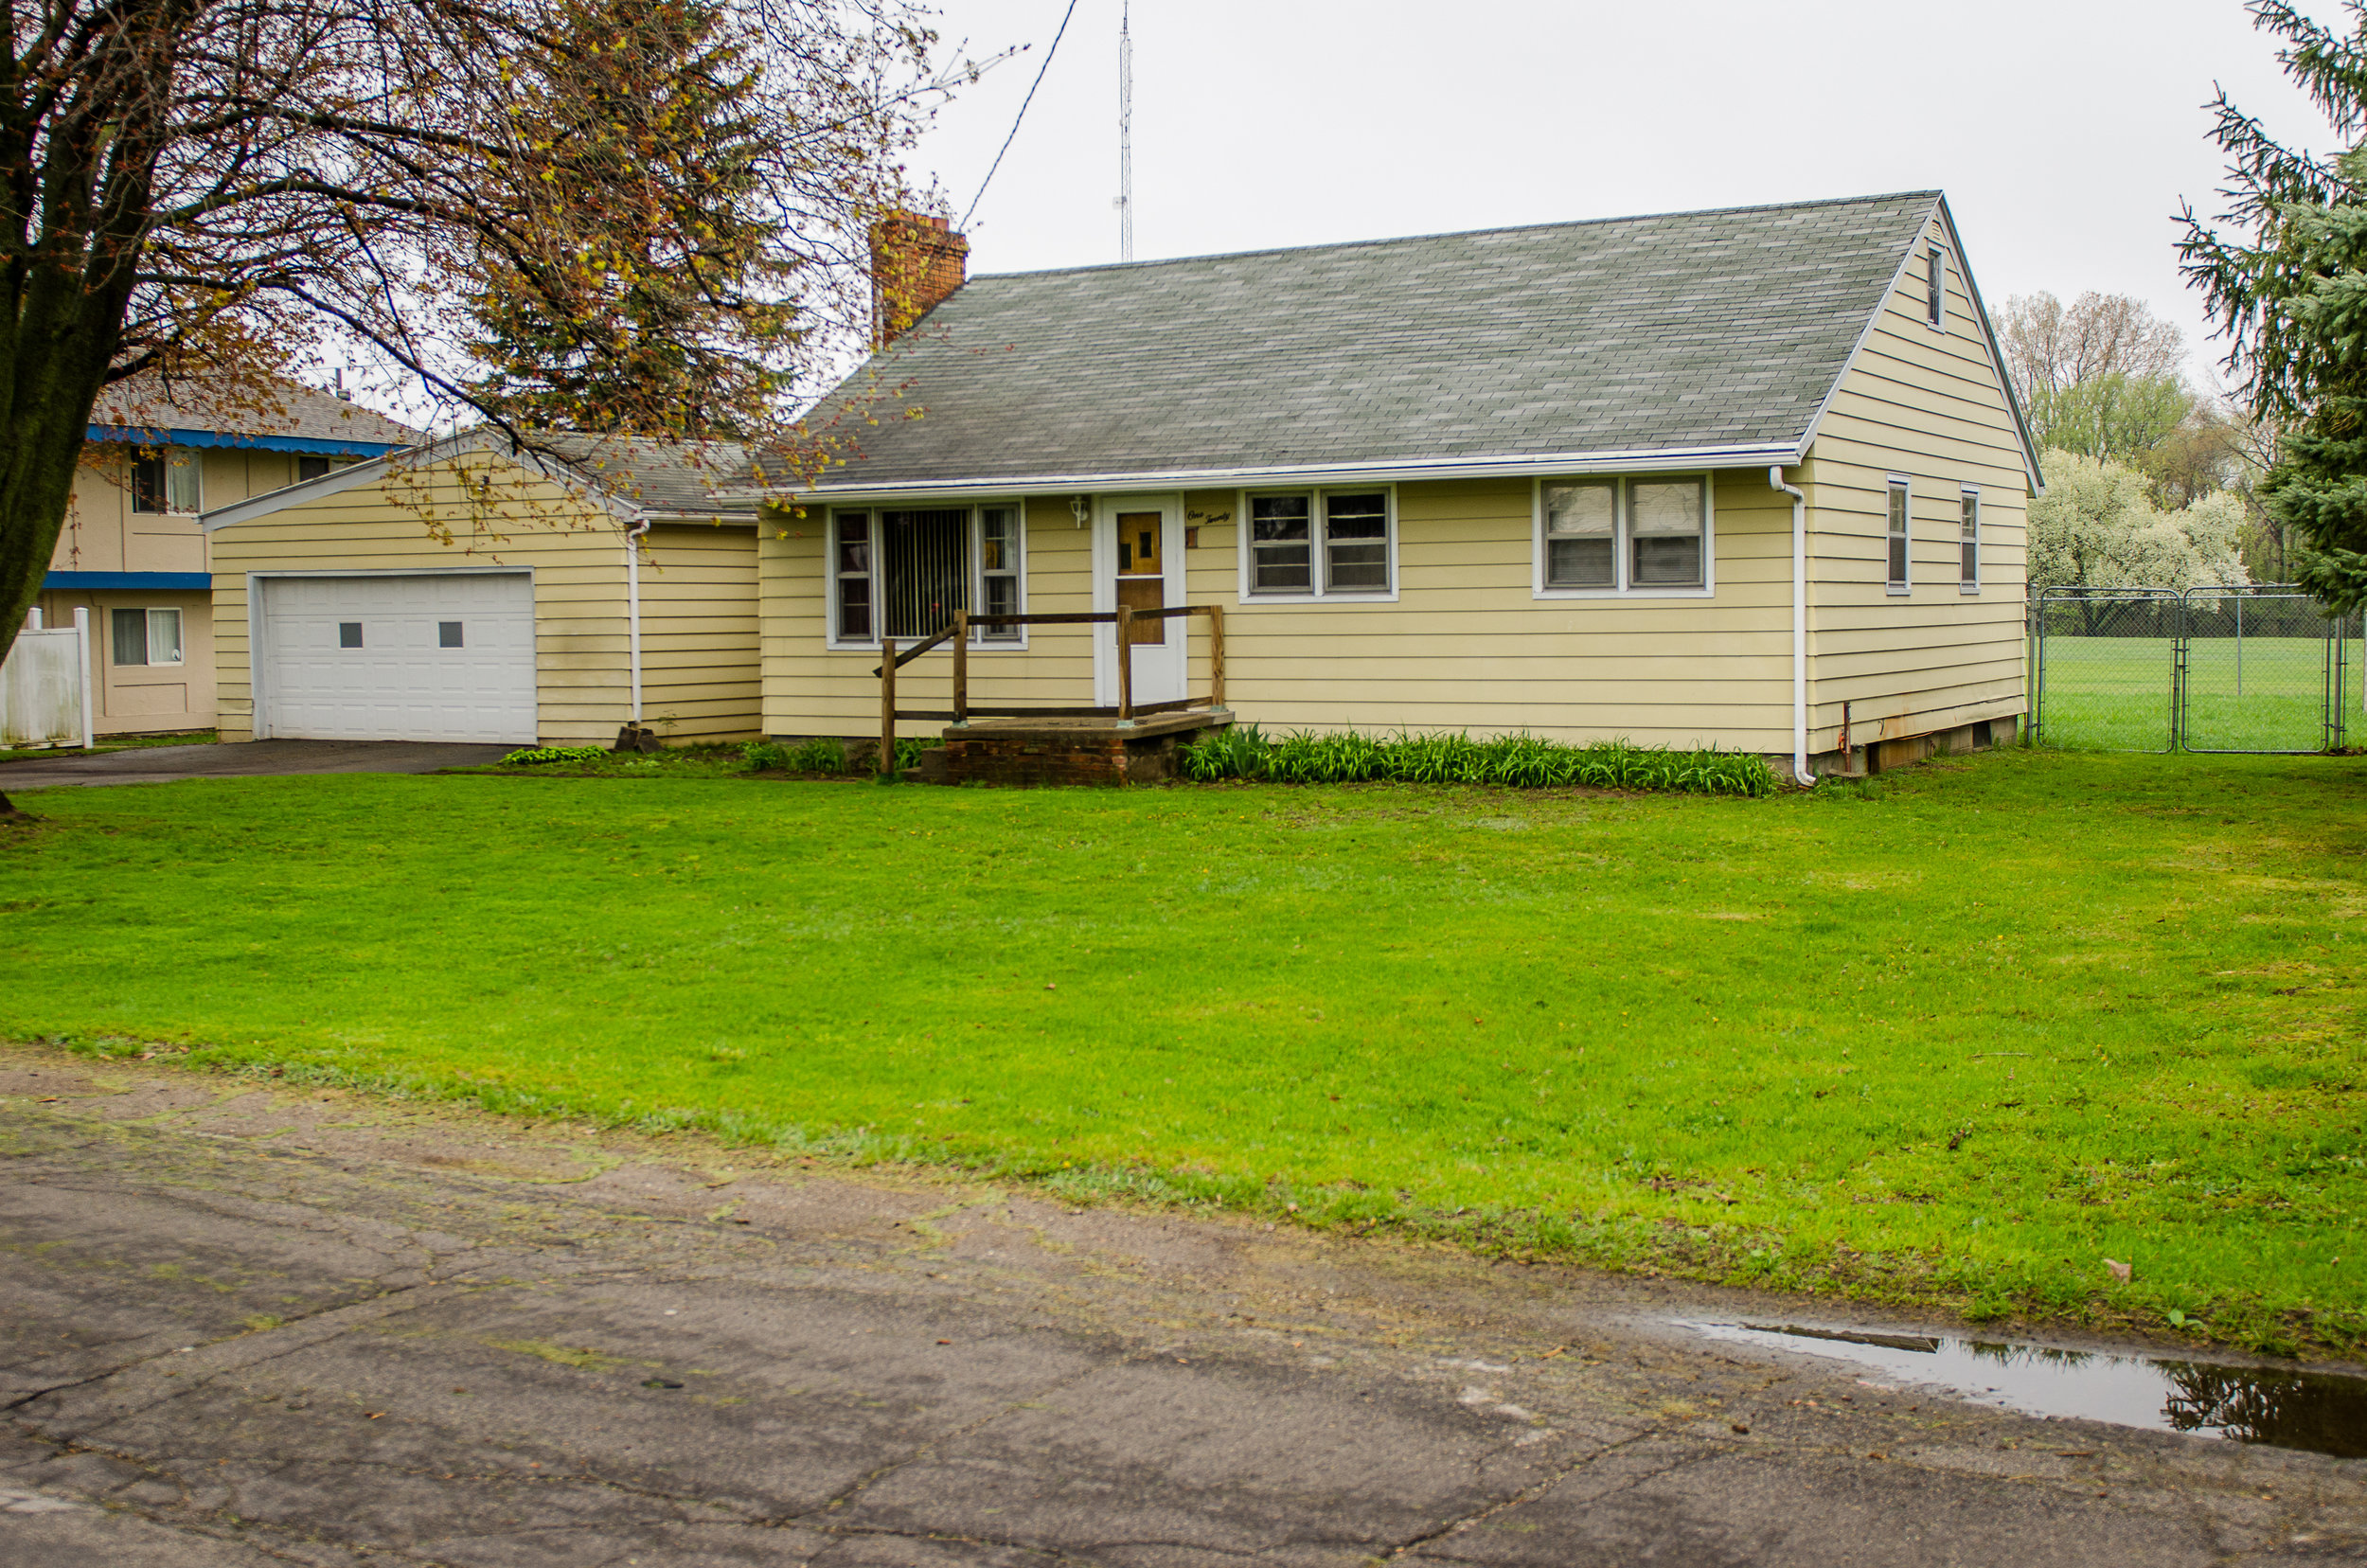 E. Grove- Grass Lake - $105,000   DOM 5 / Sold for 96% of asking price / 3 Showings